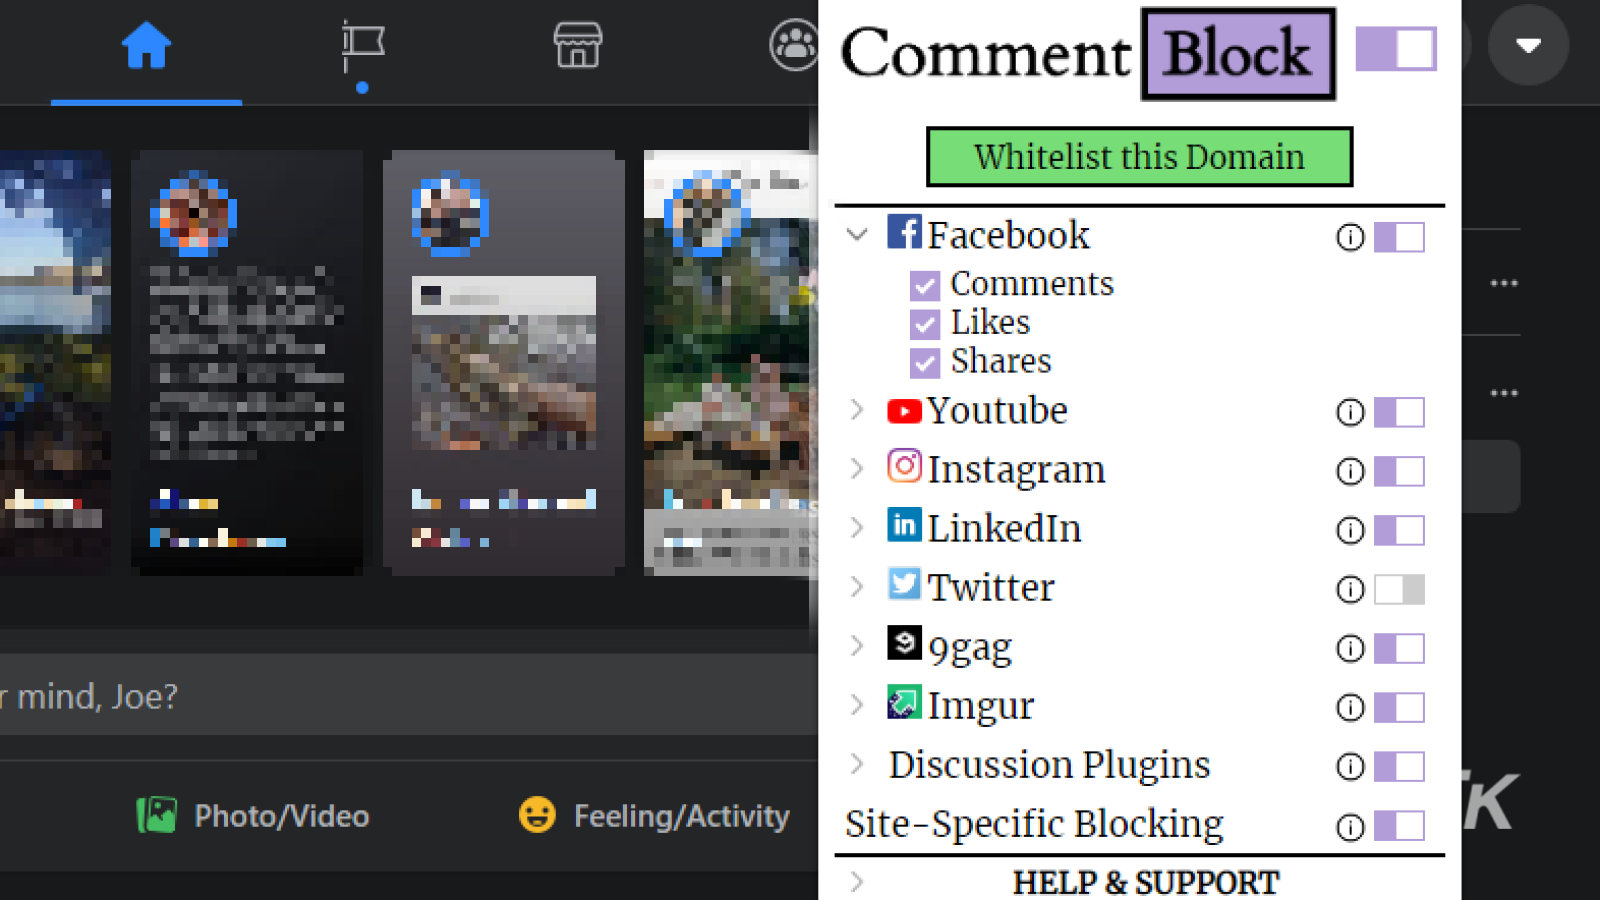 commentblock extension being used on facebook